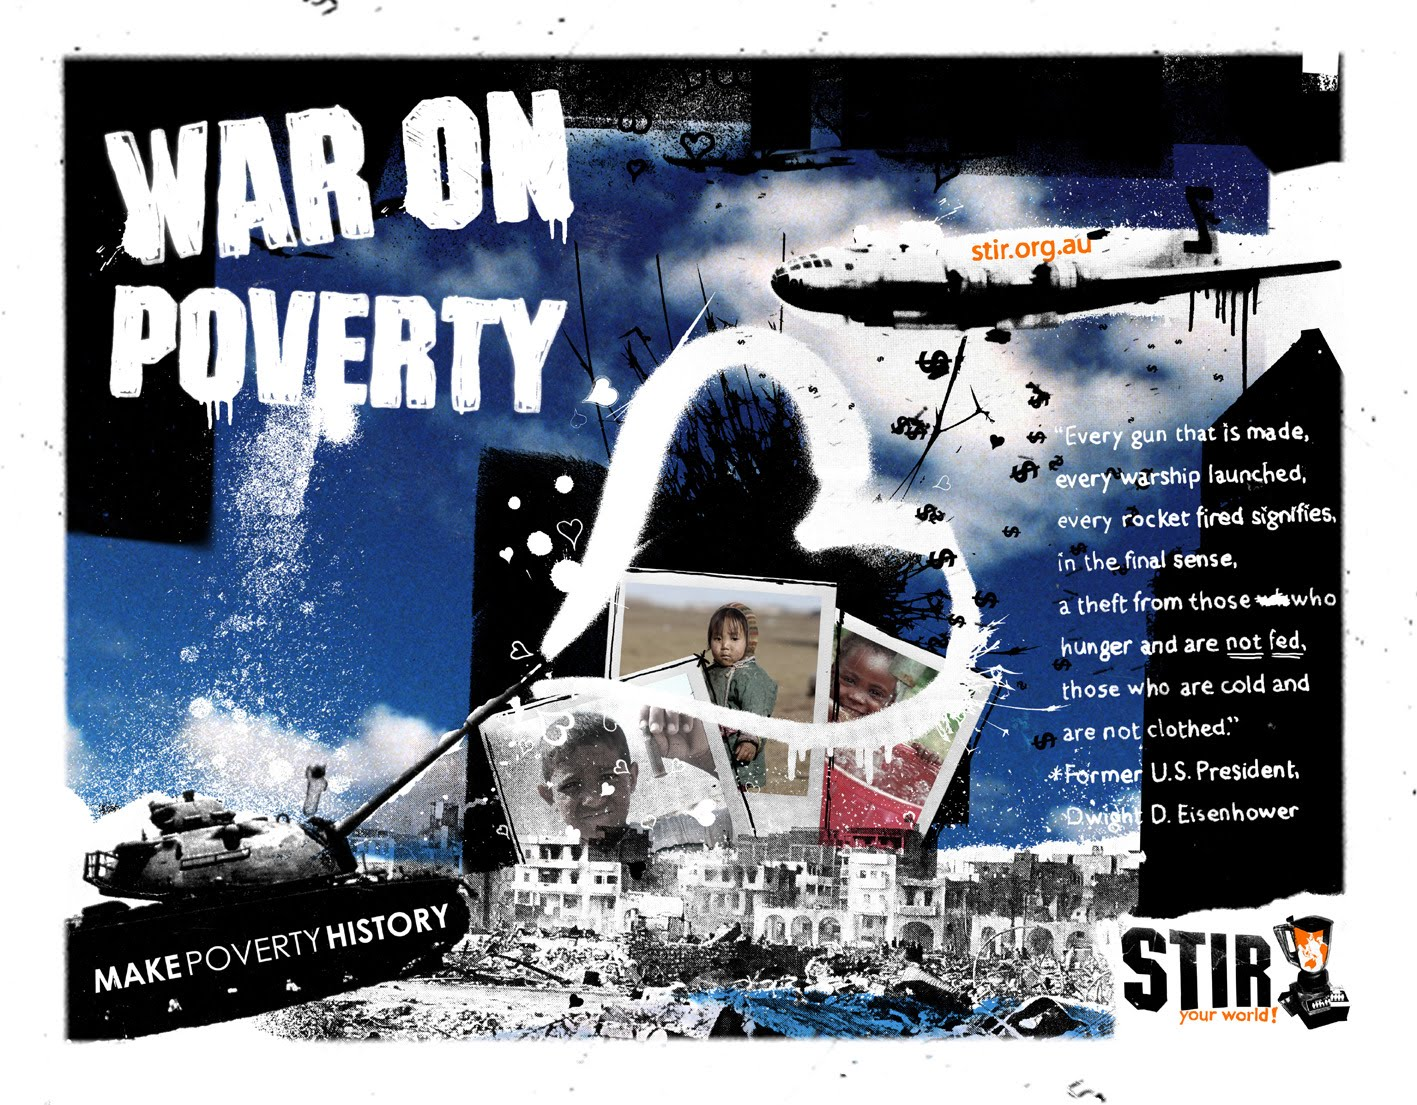 http://2.bp.blogspot.com/_rDJCbIPIXm4/TF48T3SqhAI/AAAAAAAAAHA/byfibhlhNsY/s1600/STIR-War-On-Poverty-Wallpaper-Poster.jpg